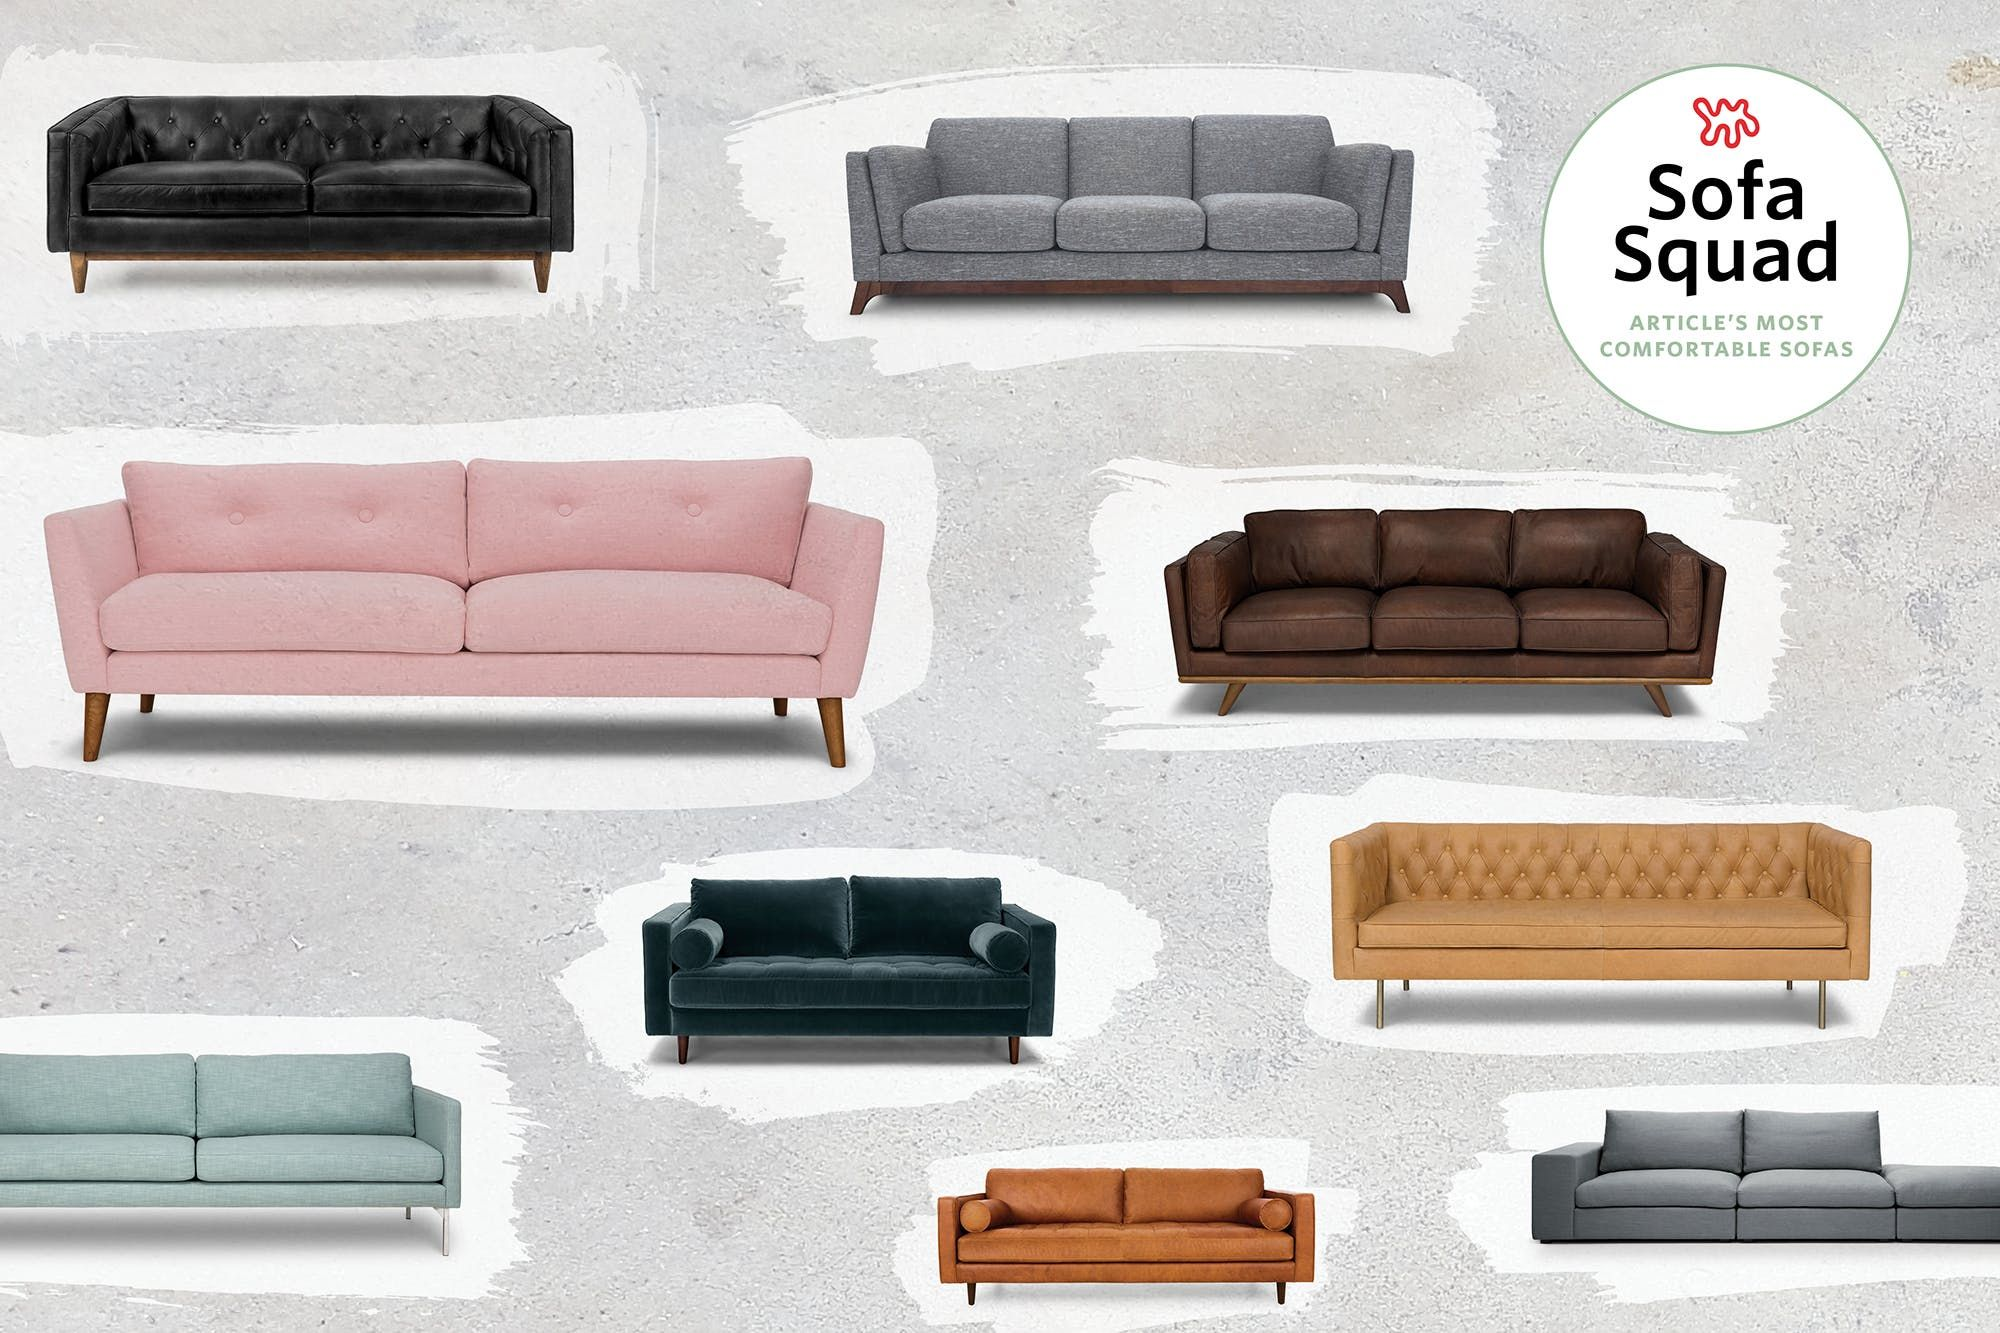 Reviewed: The Most Comfortable Sofas at Article | Comfortable sofa ...